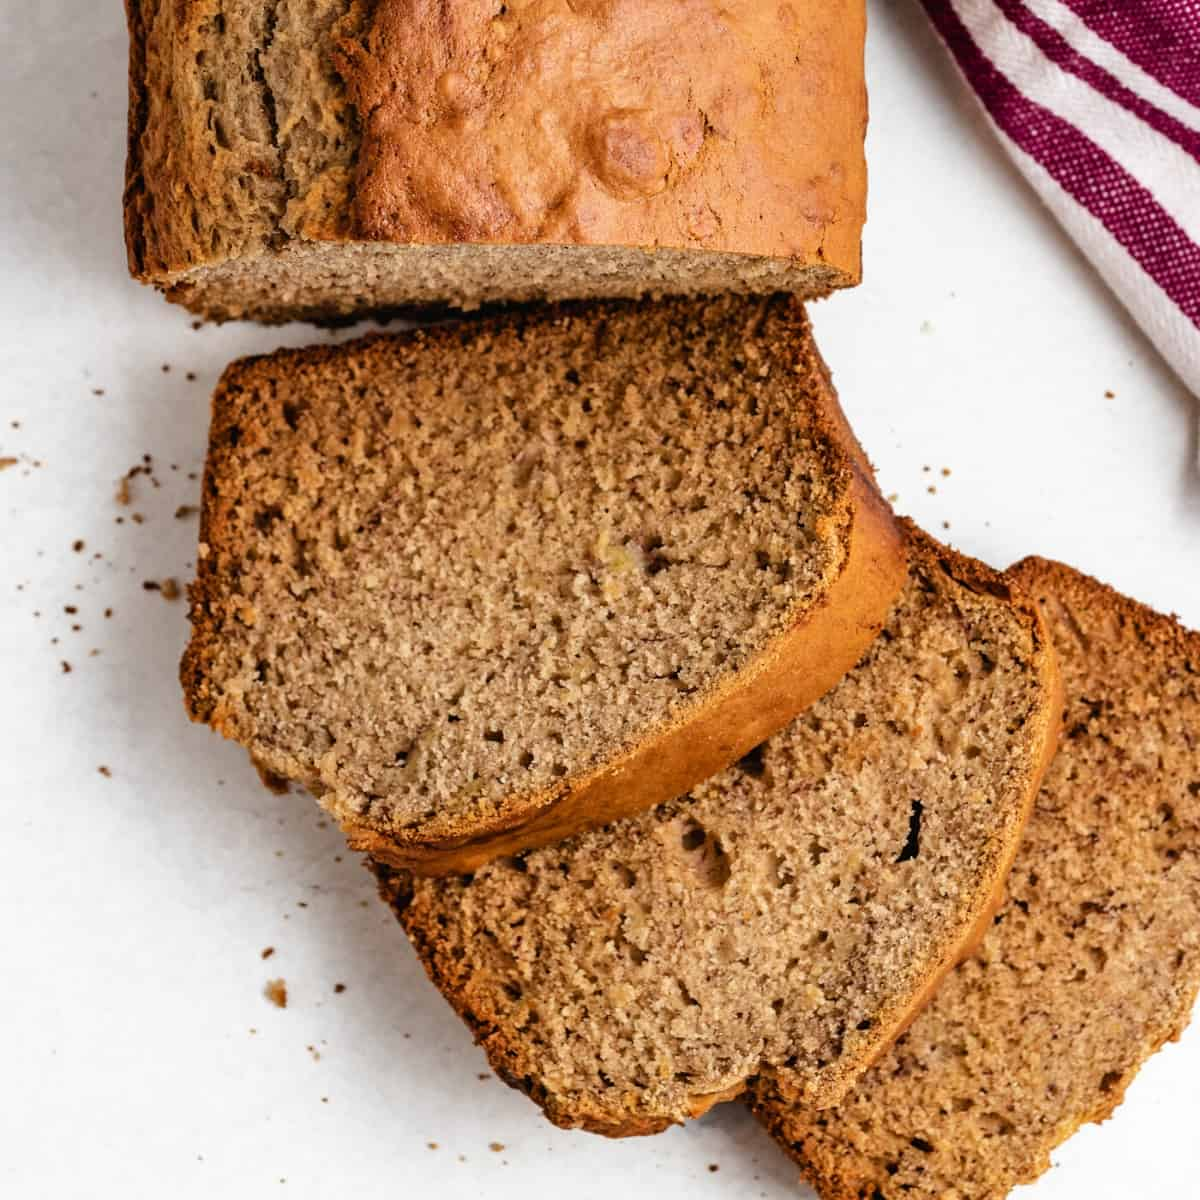 The sourdough banana bread loaf cut into slices.